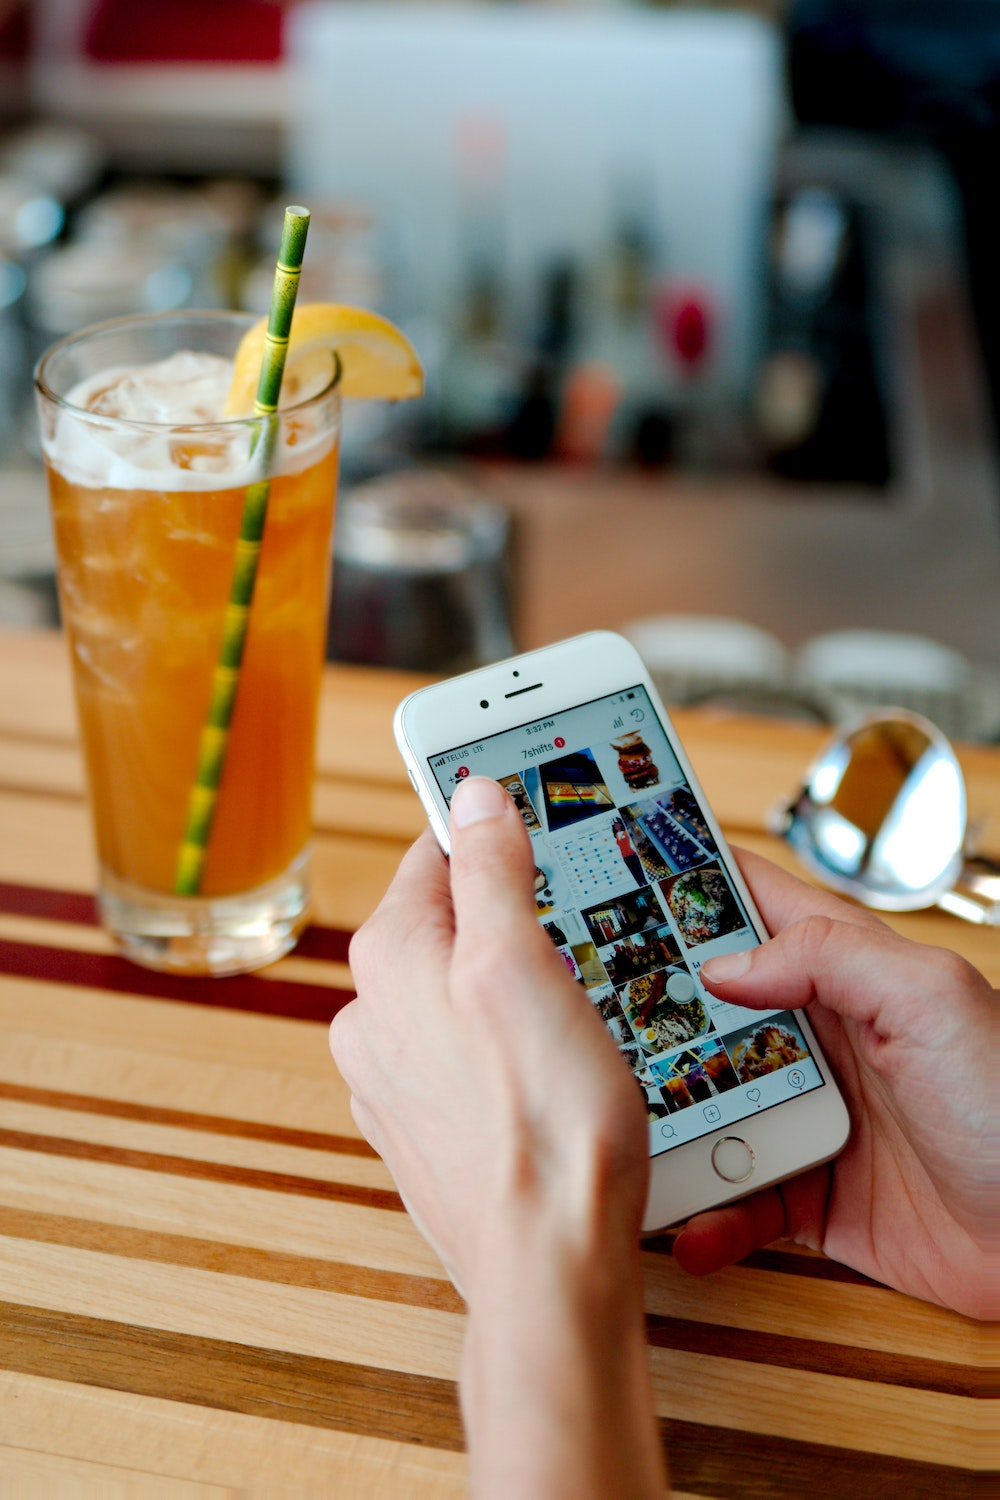 finding location through social media for self guided tour